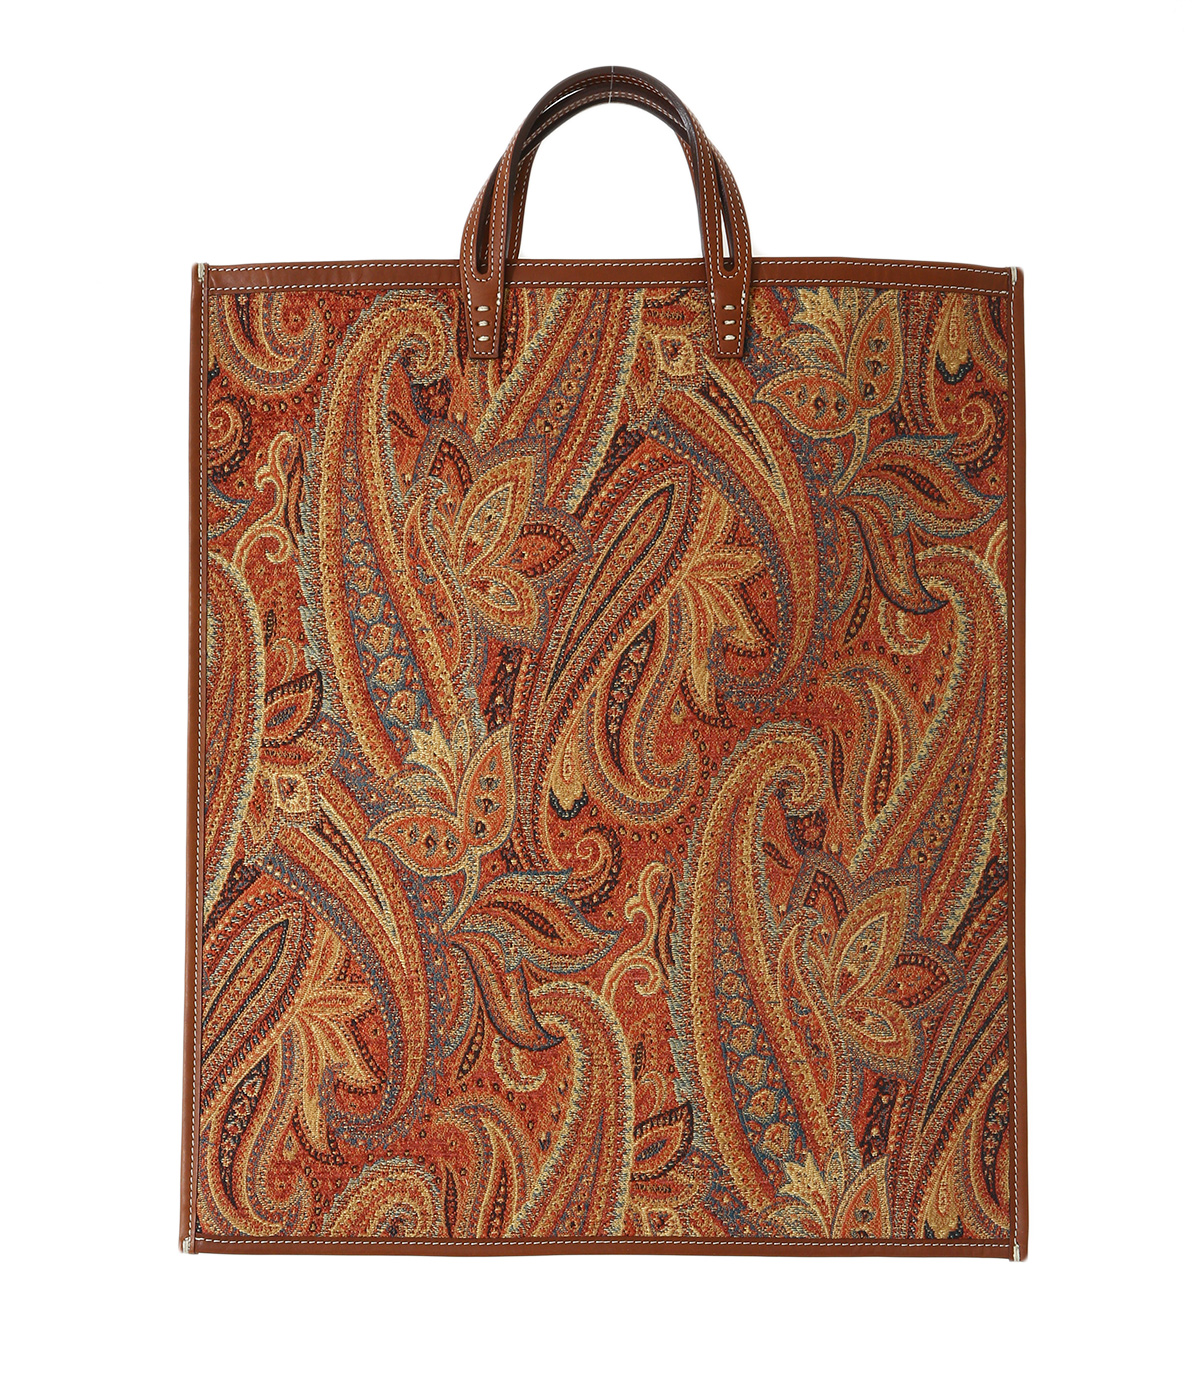 FAN-PAISLEY ORANGE-